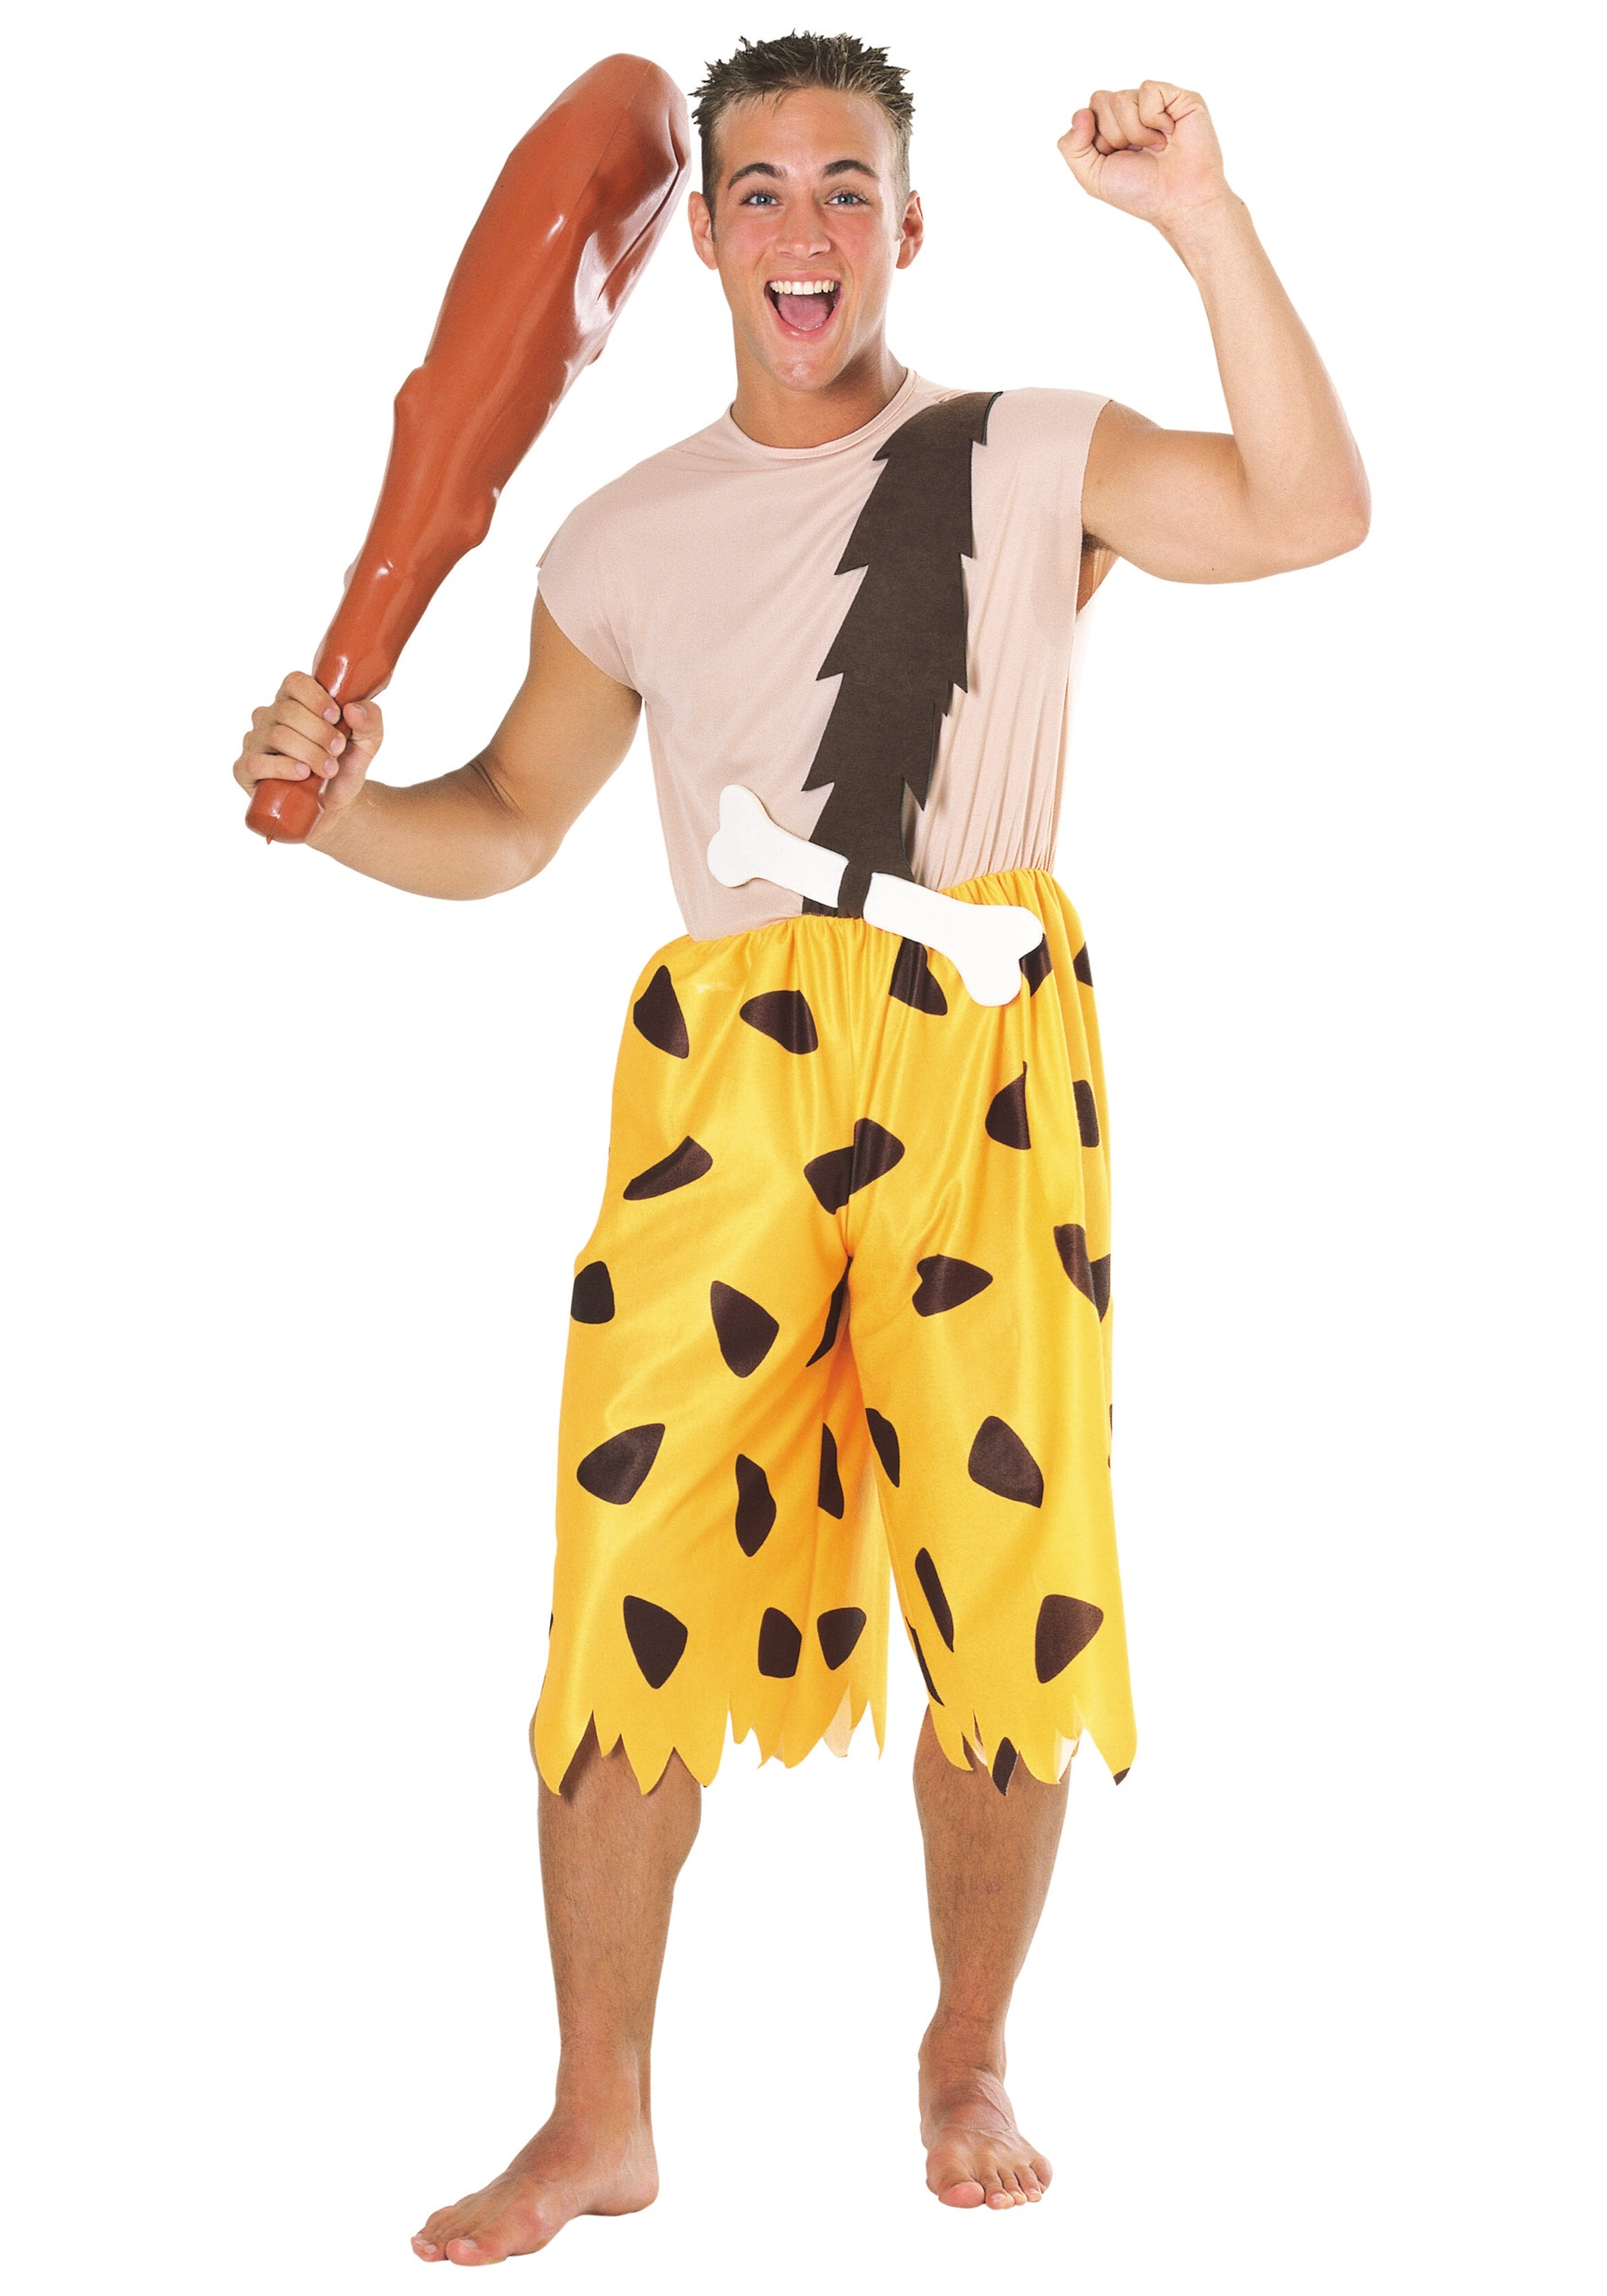 Bamm Bamm Adult Costume  sc 1 st  Halloween Costumes : bam bam costume for adults  - Germanpascual.Com